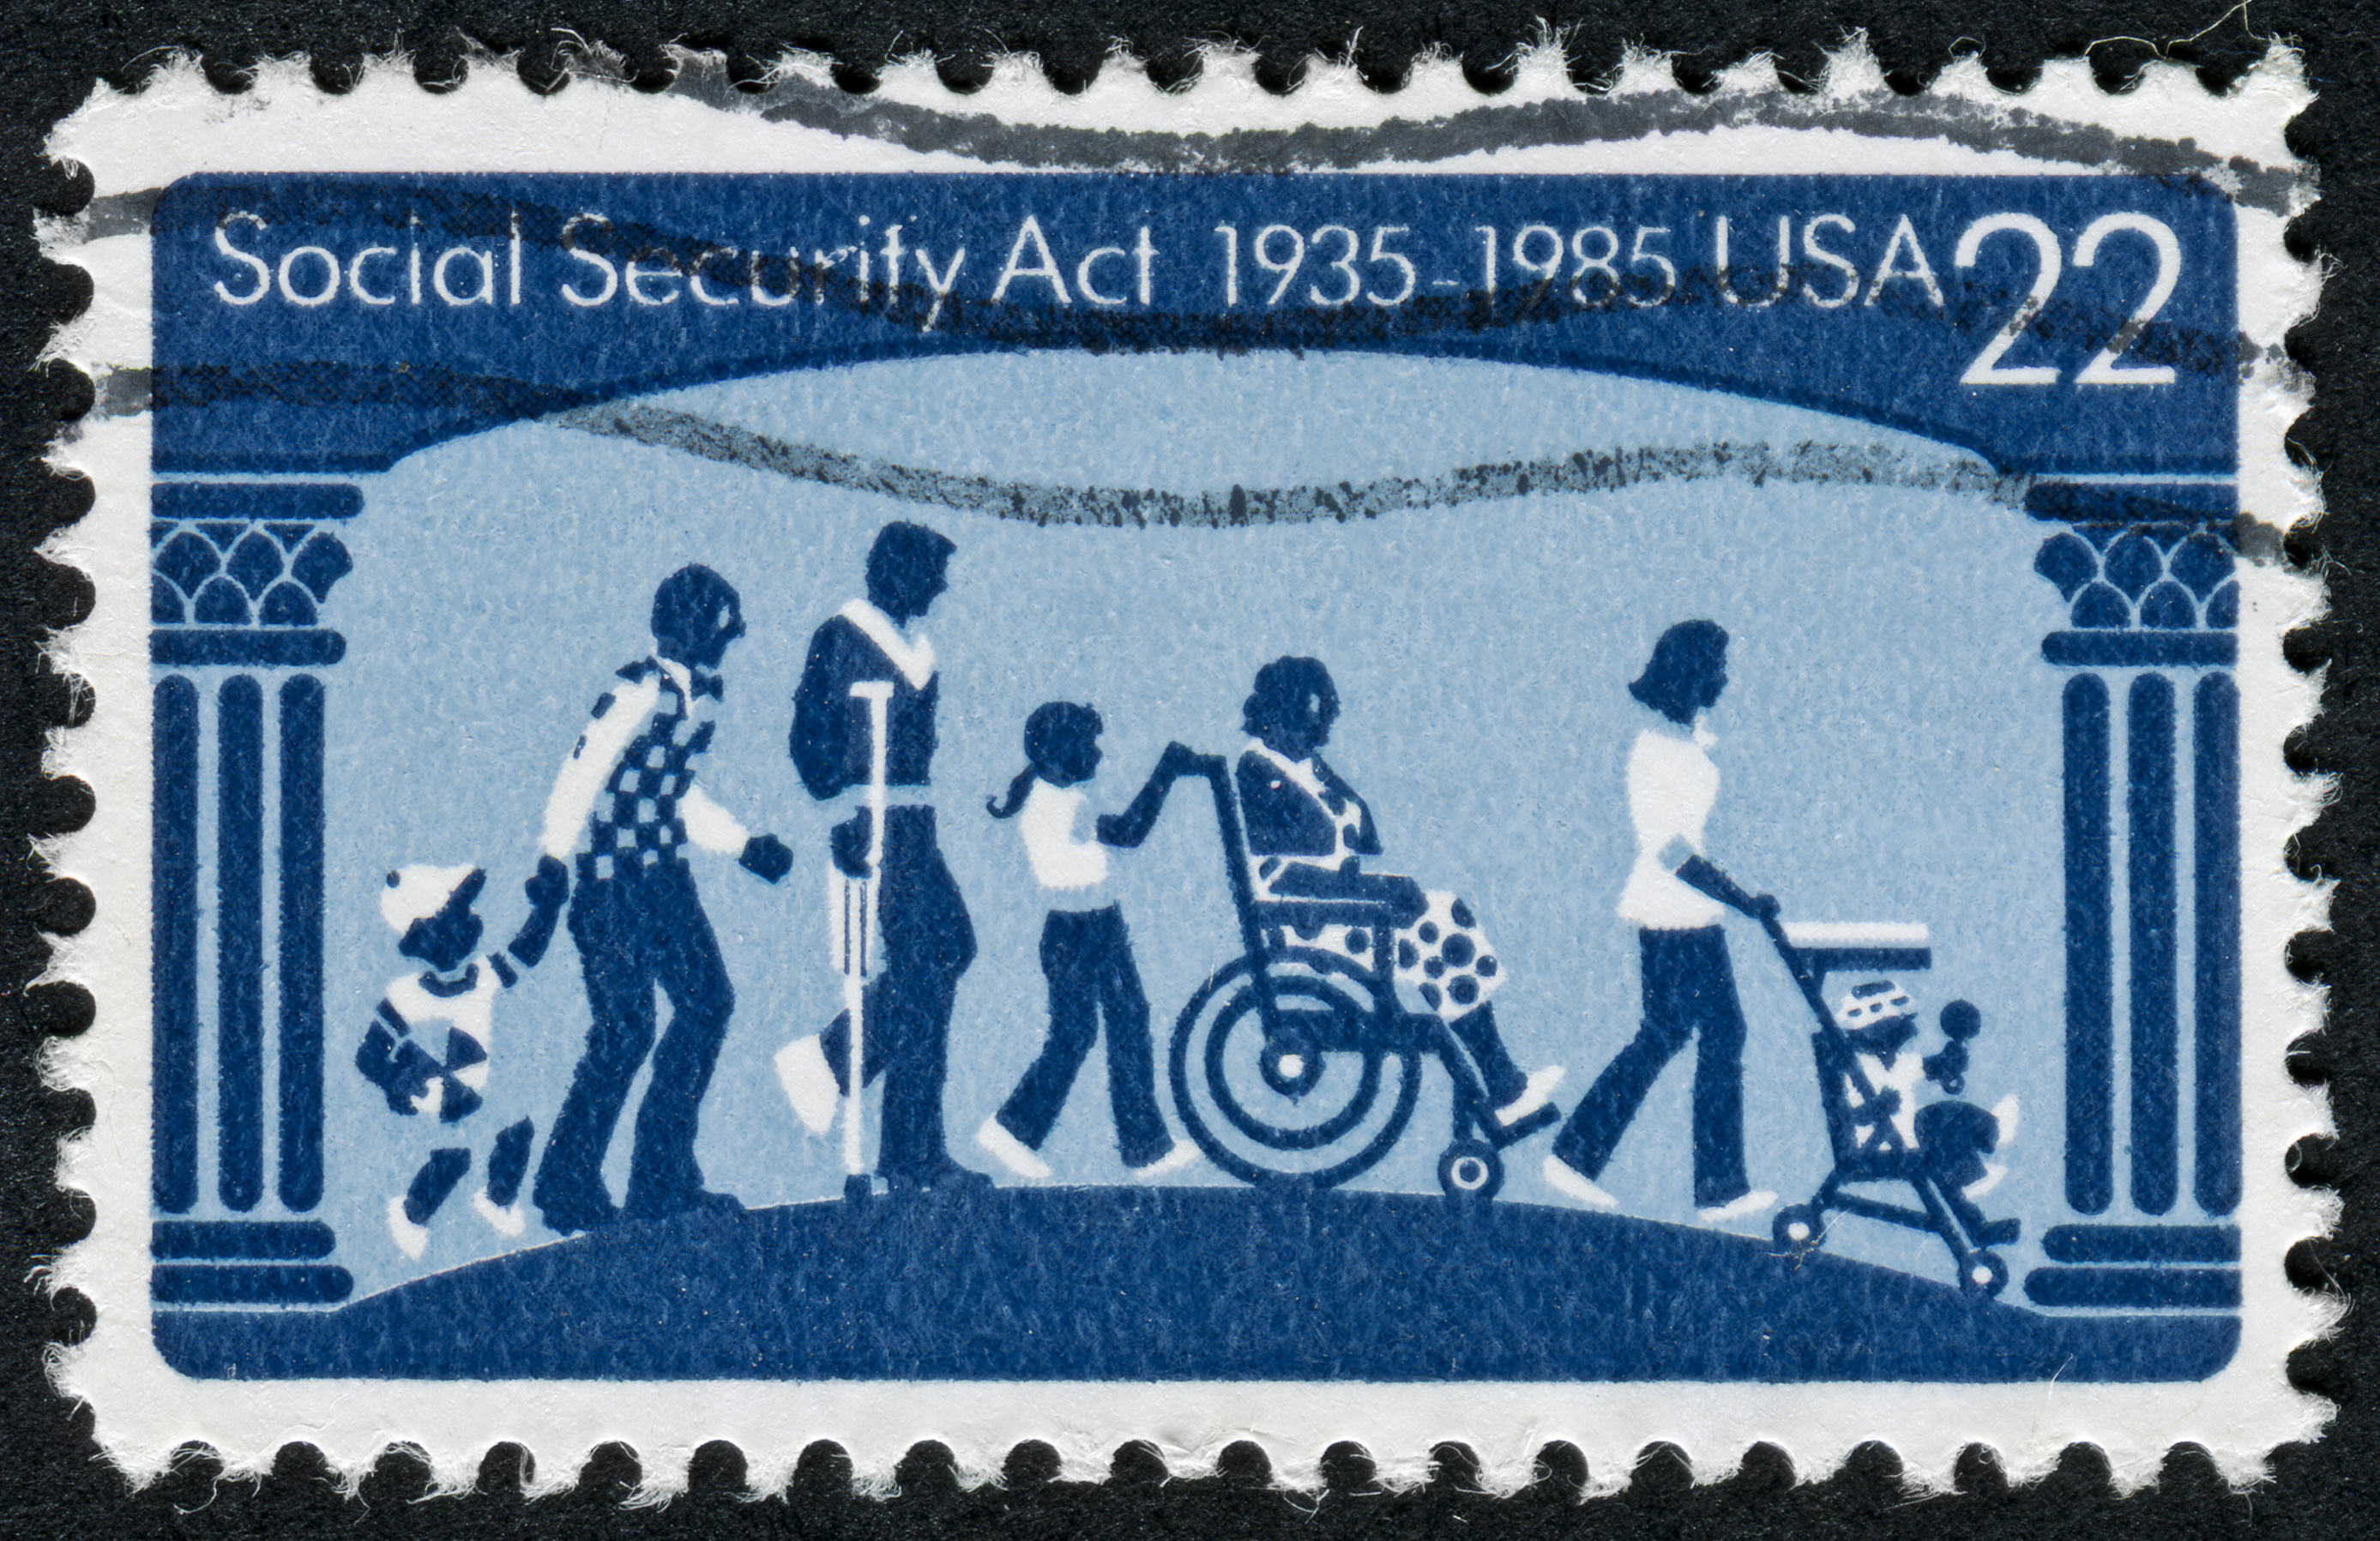 What would be a good way to write an argumentive essay on social security disabliity?